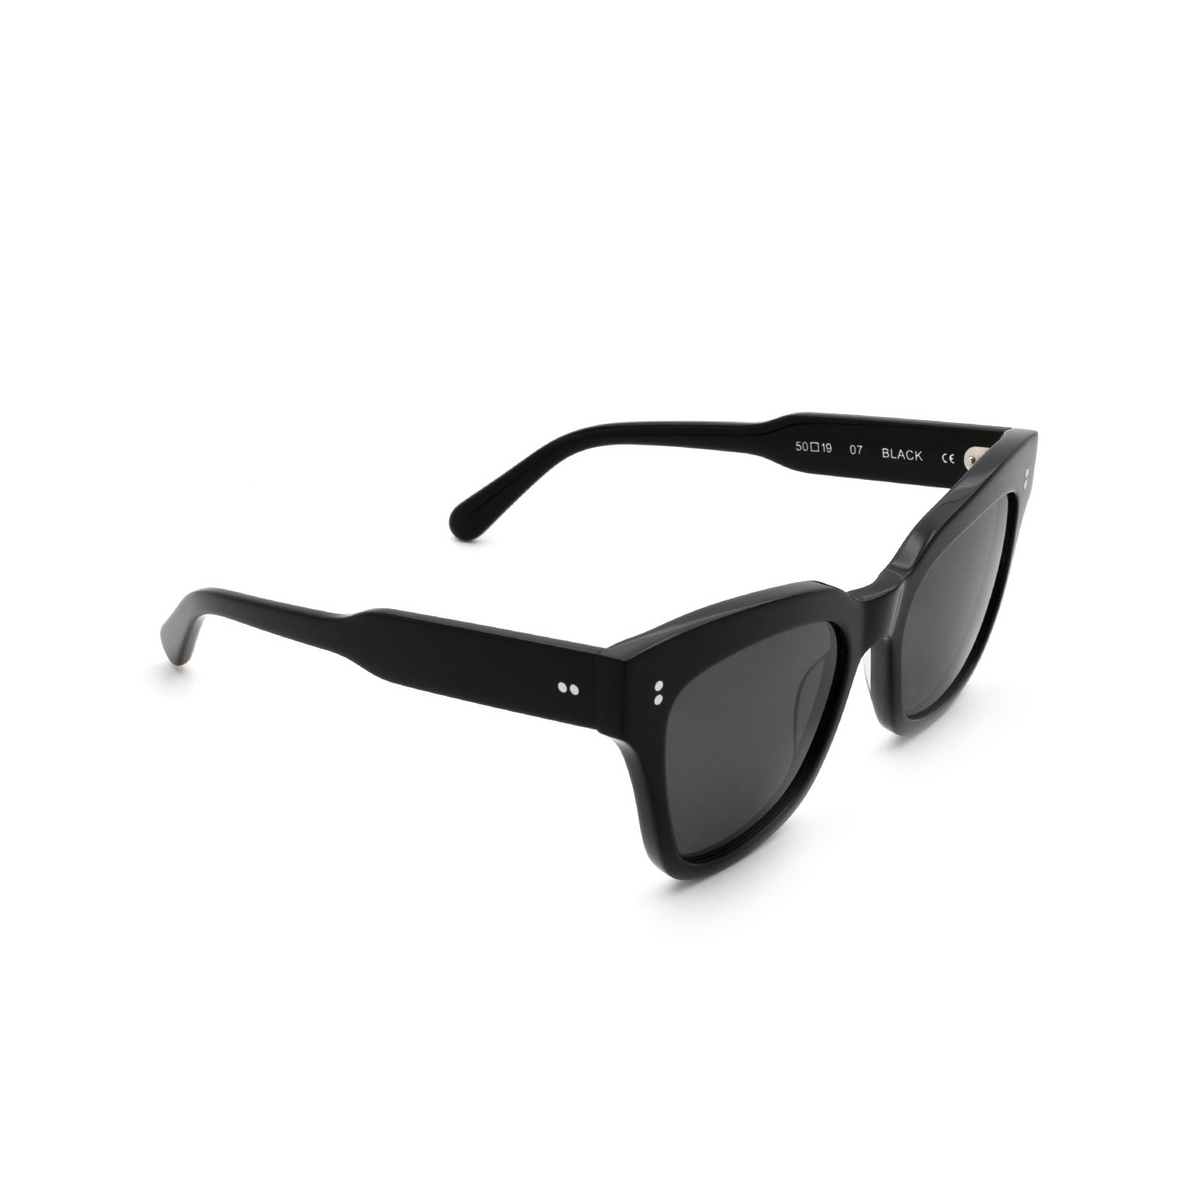 Chimi® Butterfly Sunglasses: 07 color Black - three-quarters view.